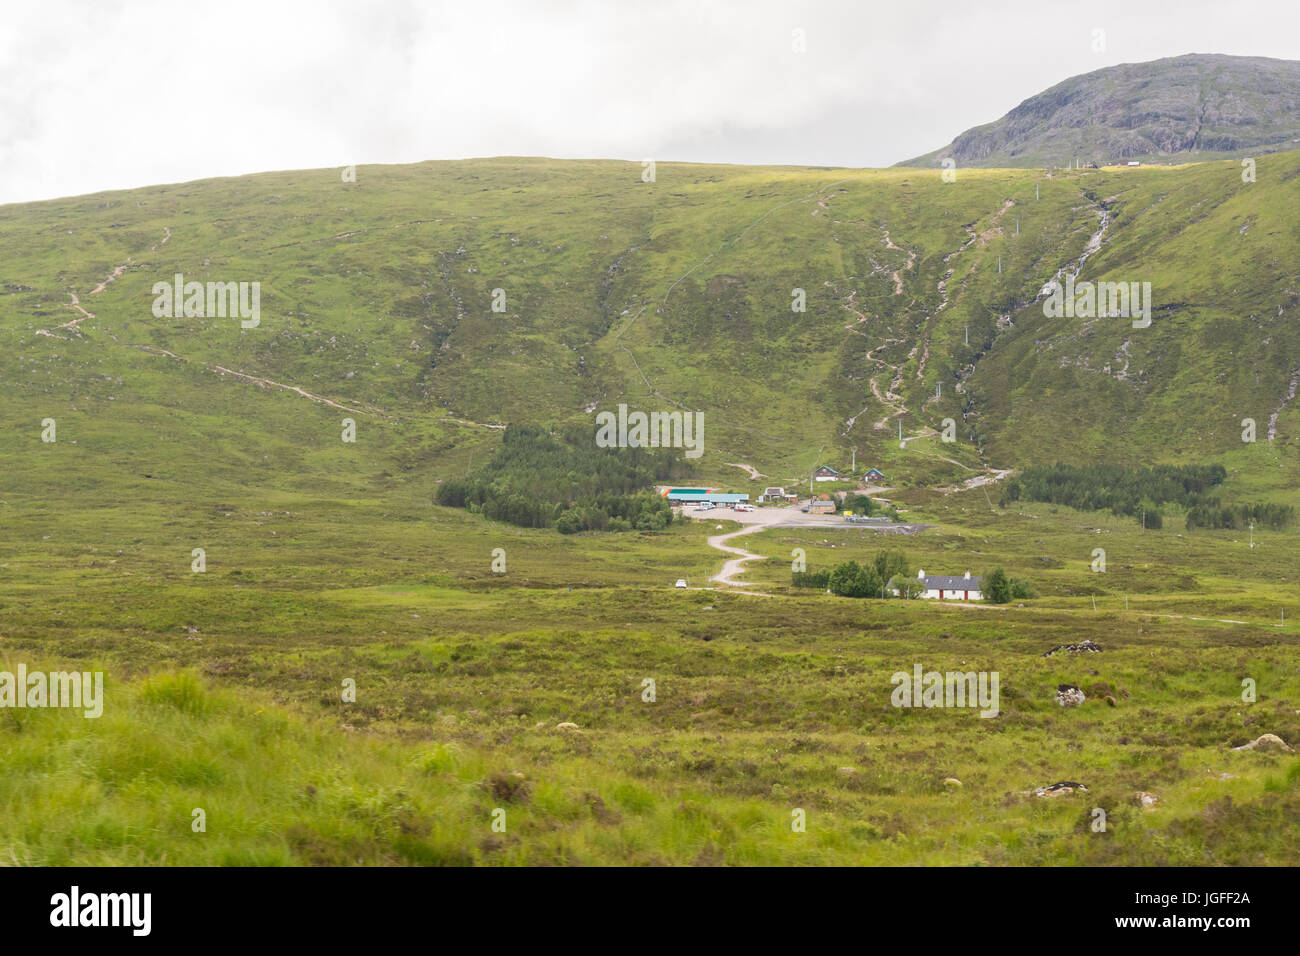 Glencoe Mountain Resort - with downhill mountain bike tracks  - and Black Rock Cottage in the foreground - Stock Image